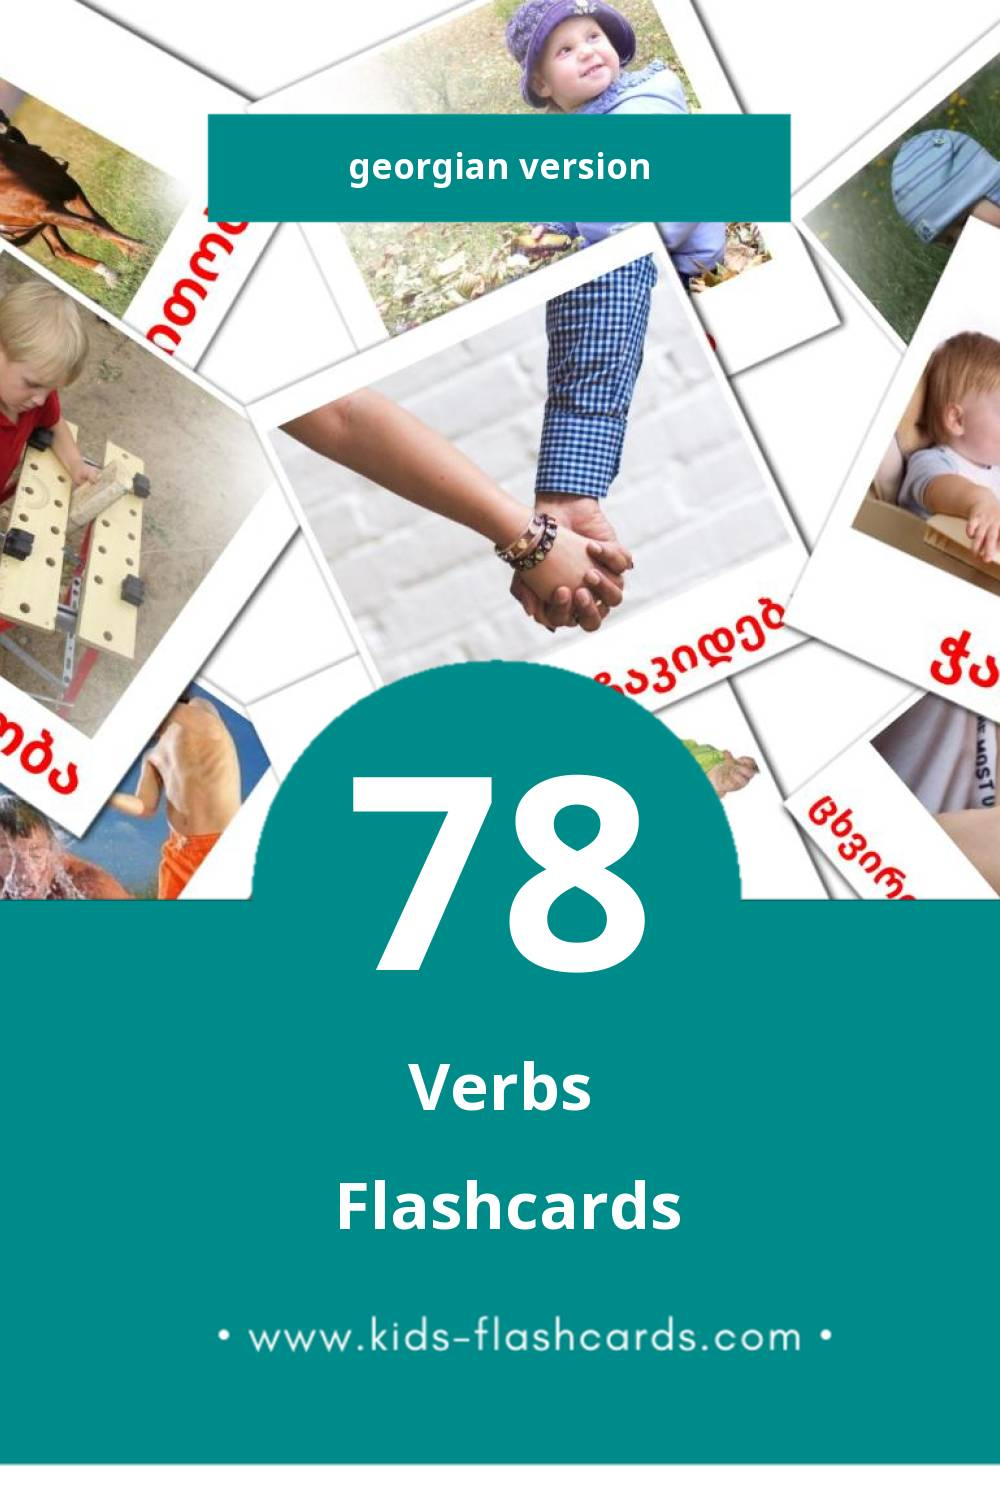 Visual ზმნები Flashcards for Toddlers (22 cards in Georgian)